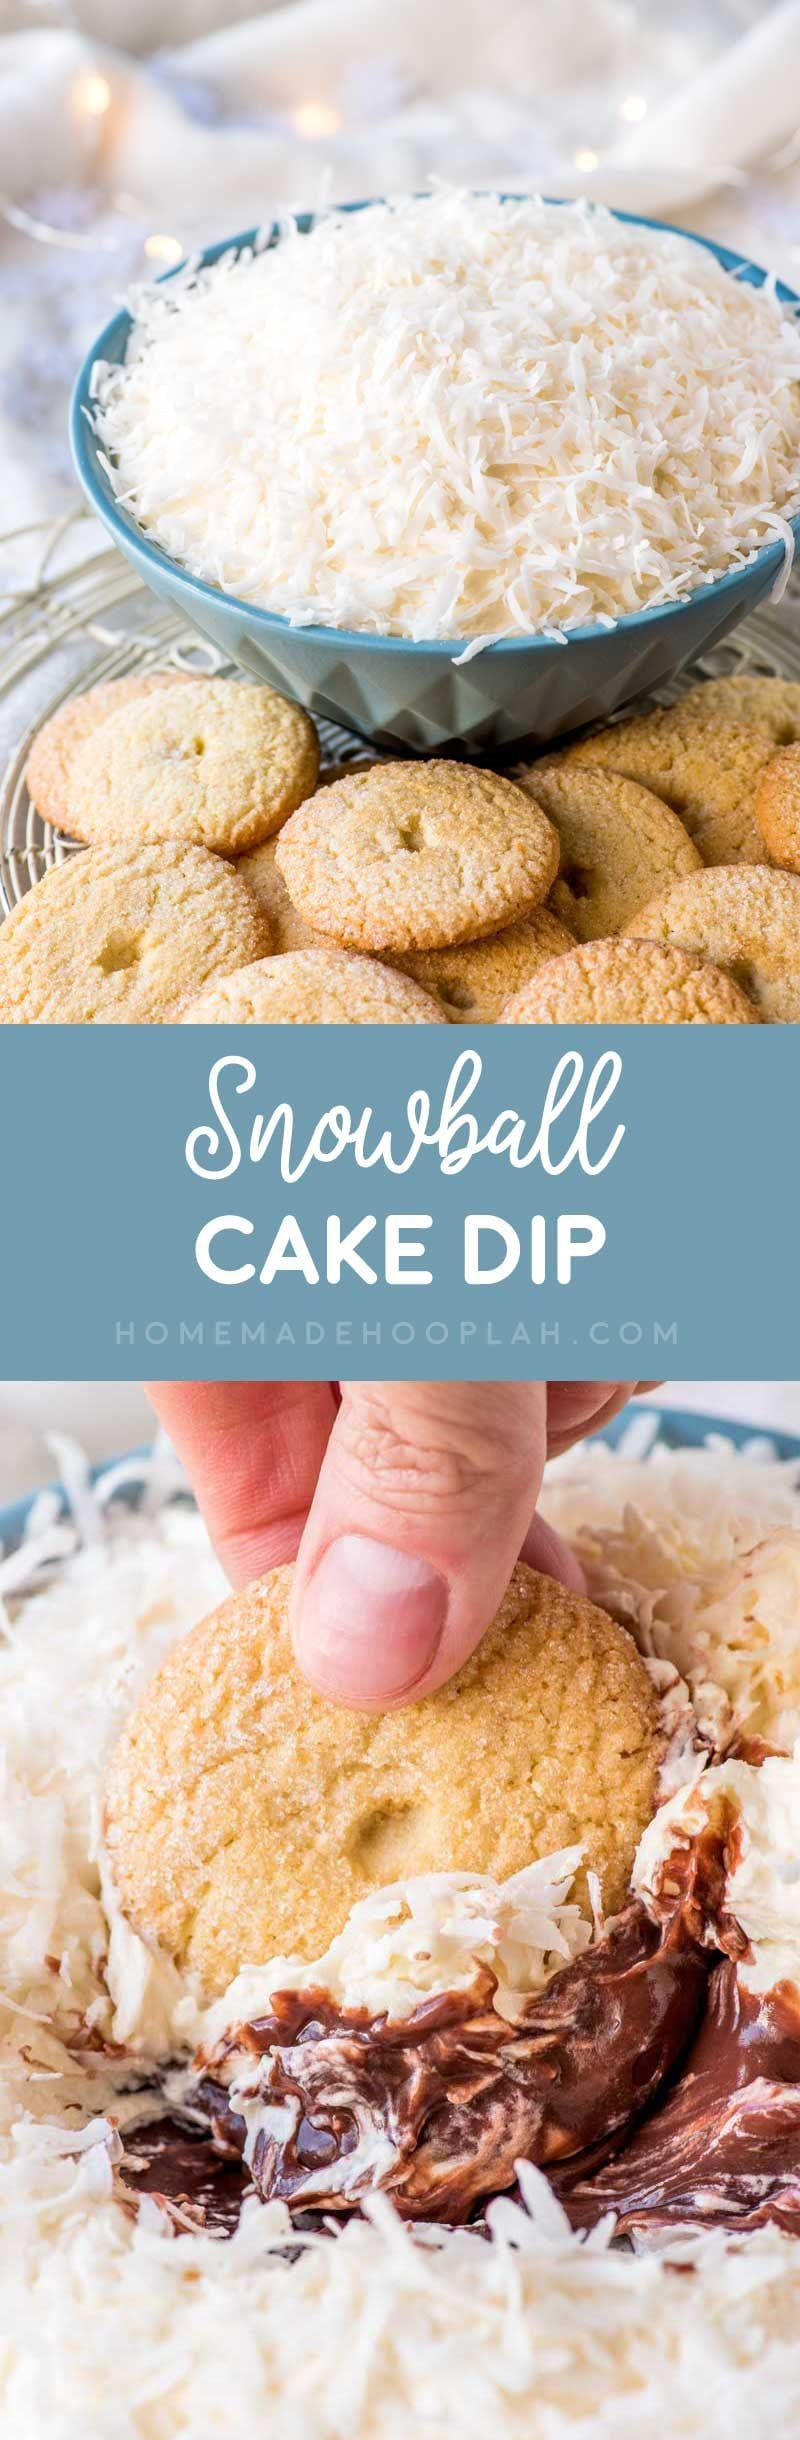 Snowball Cake Dip! Whether you love classic snowball cake or the Sno Ball treats from Hostess, this unique cake dip will be perfect for any cake, chocolate, and coconut lover!   HomemadeHooplah.com